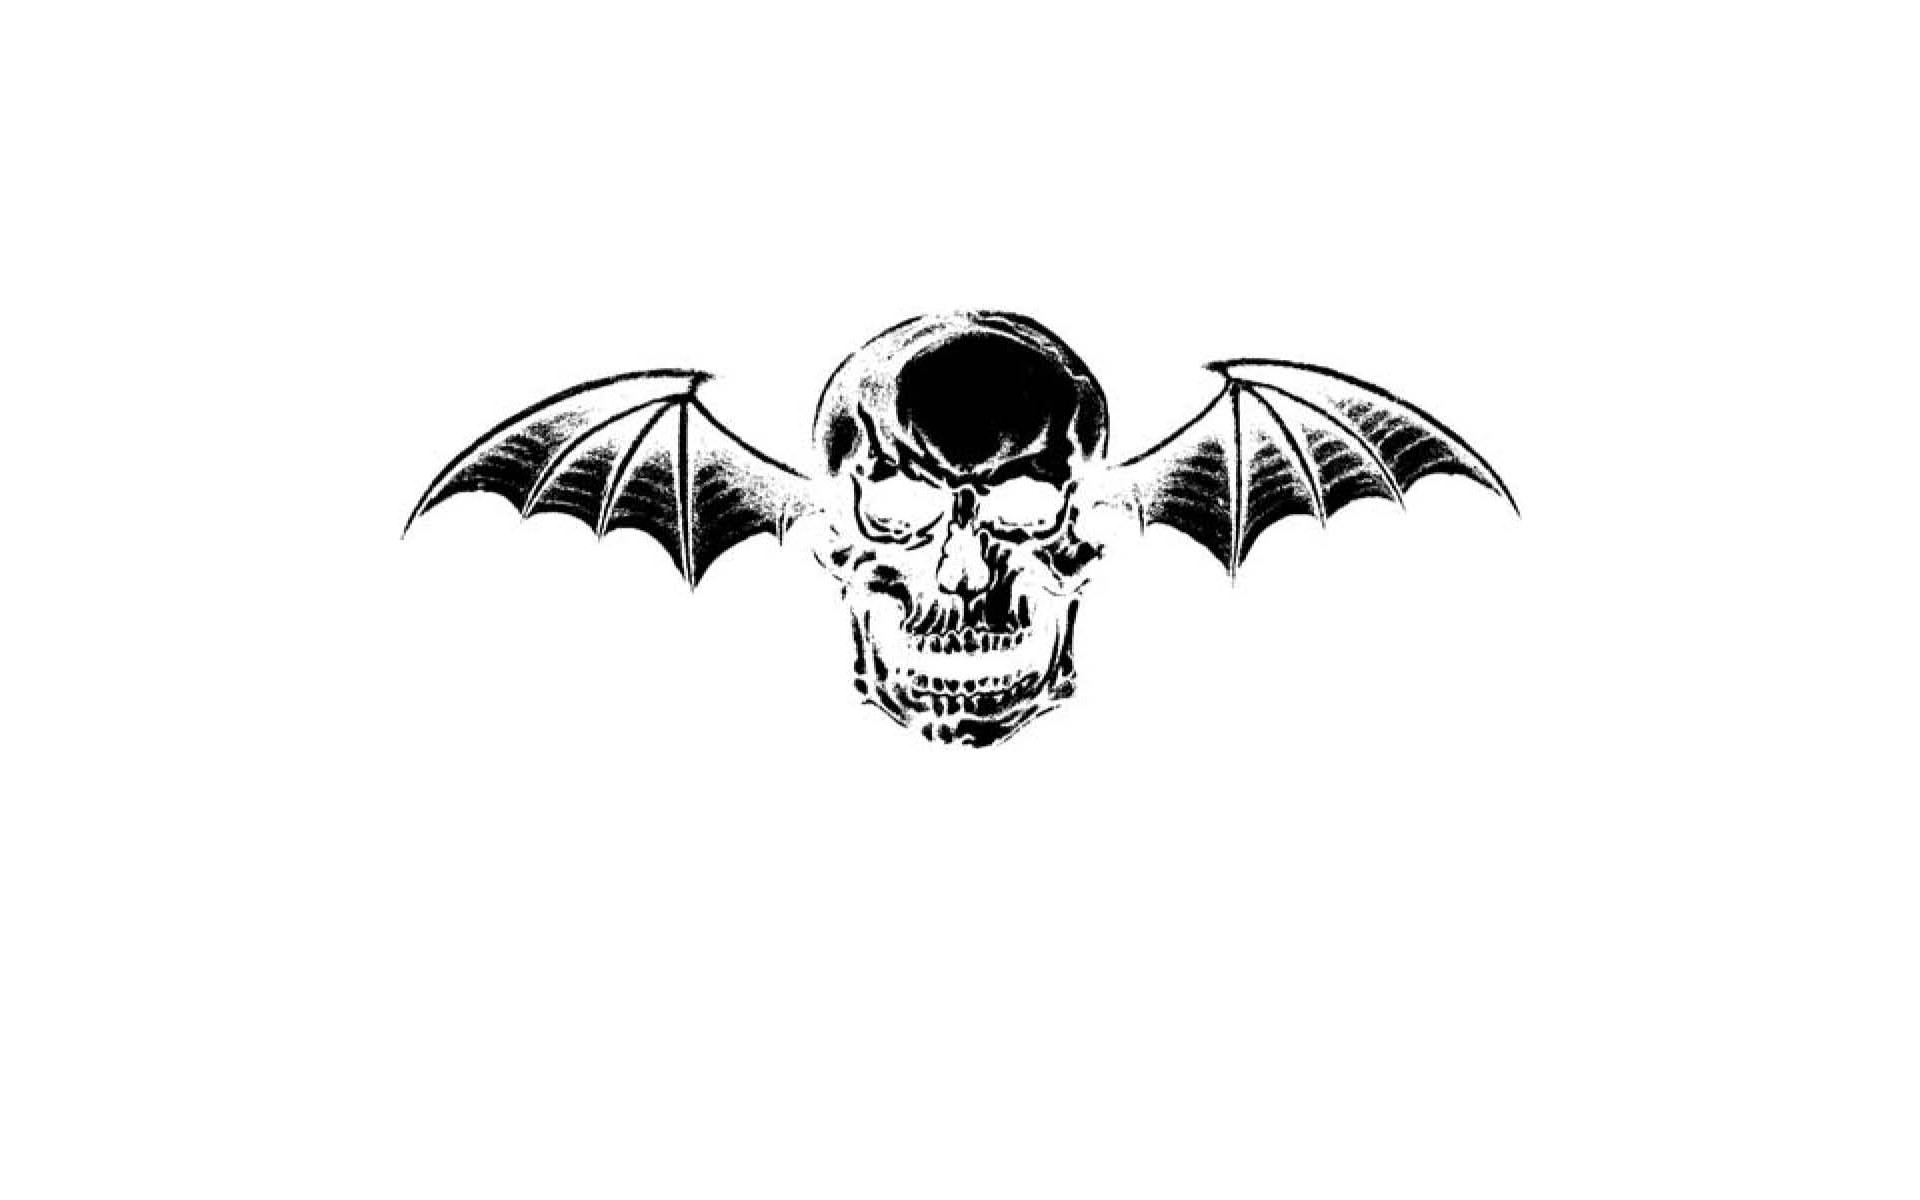 1920x1200 avenged sevenfold deathbat by mckee91 scraps avenged sevenfold new .